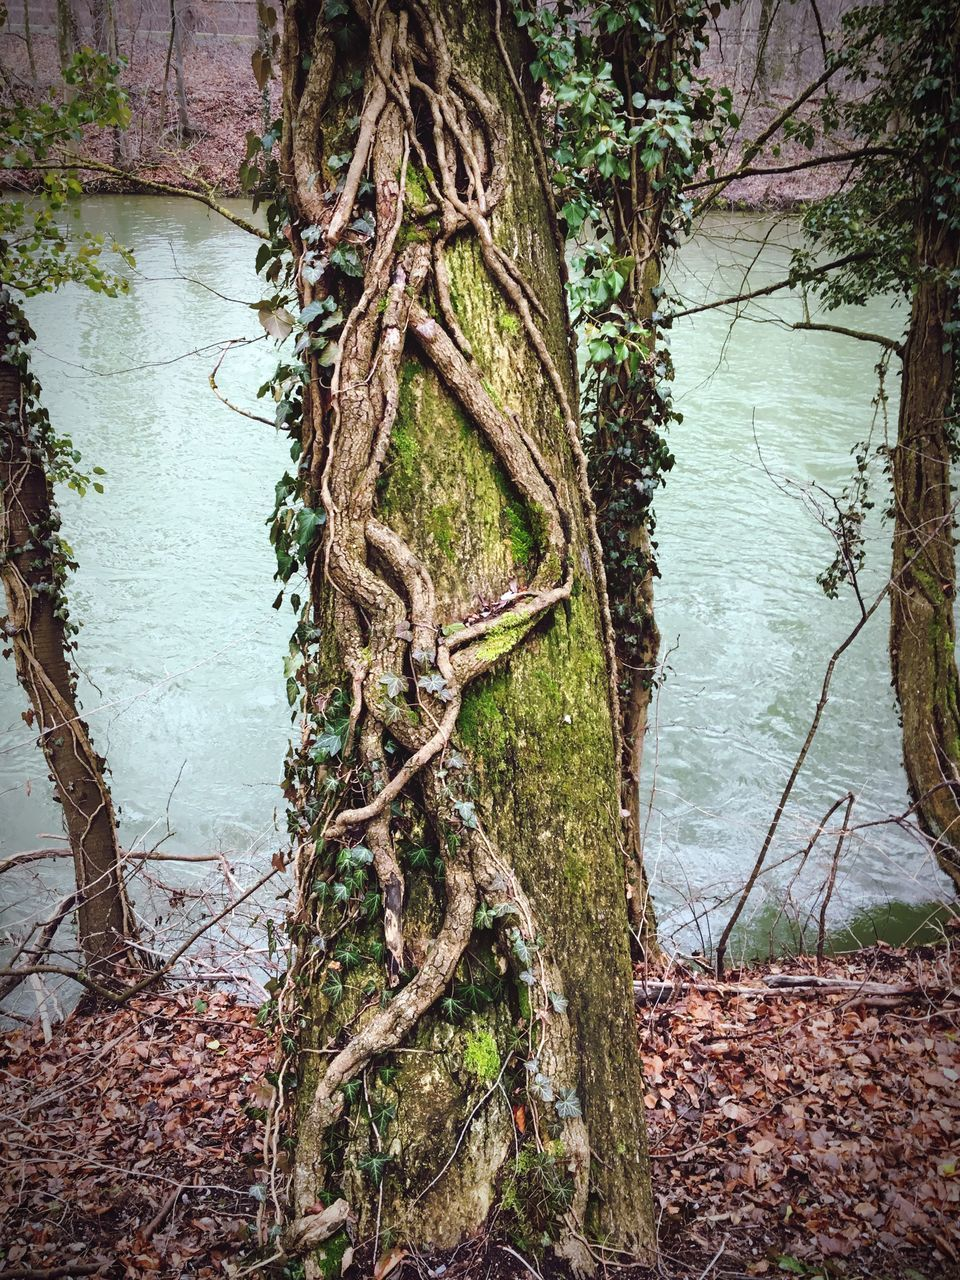 tree, tree trunk, nature, water, beauty in nature, branch, day, tranquility, outdoors, no people, lake, growth, root, forest, tranquil scene, scenics, landscape, bare tree, thick, dead tree, sky